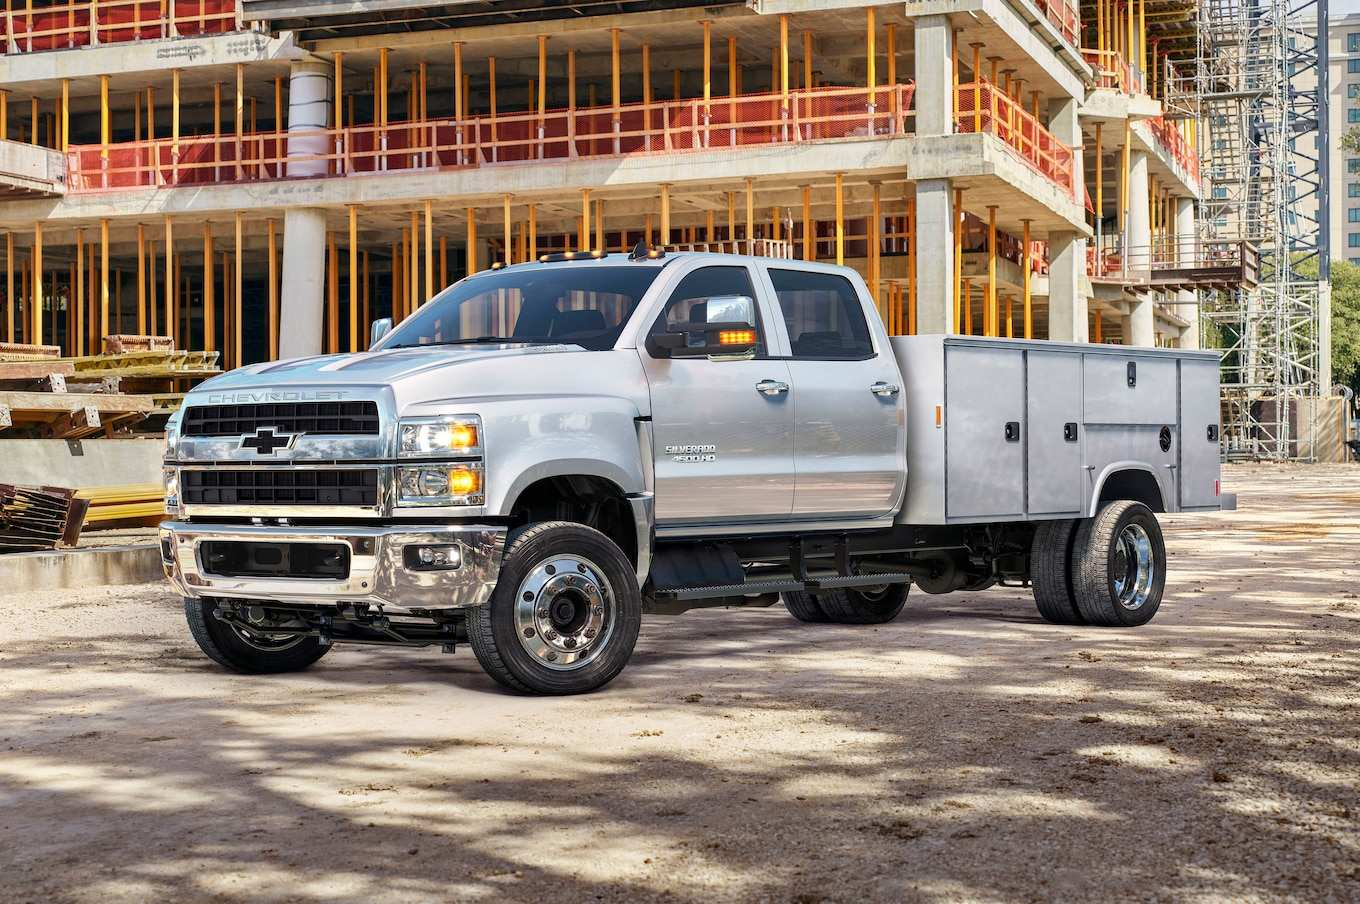 89 Best 2020 GMC Kodiak Rumors